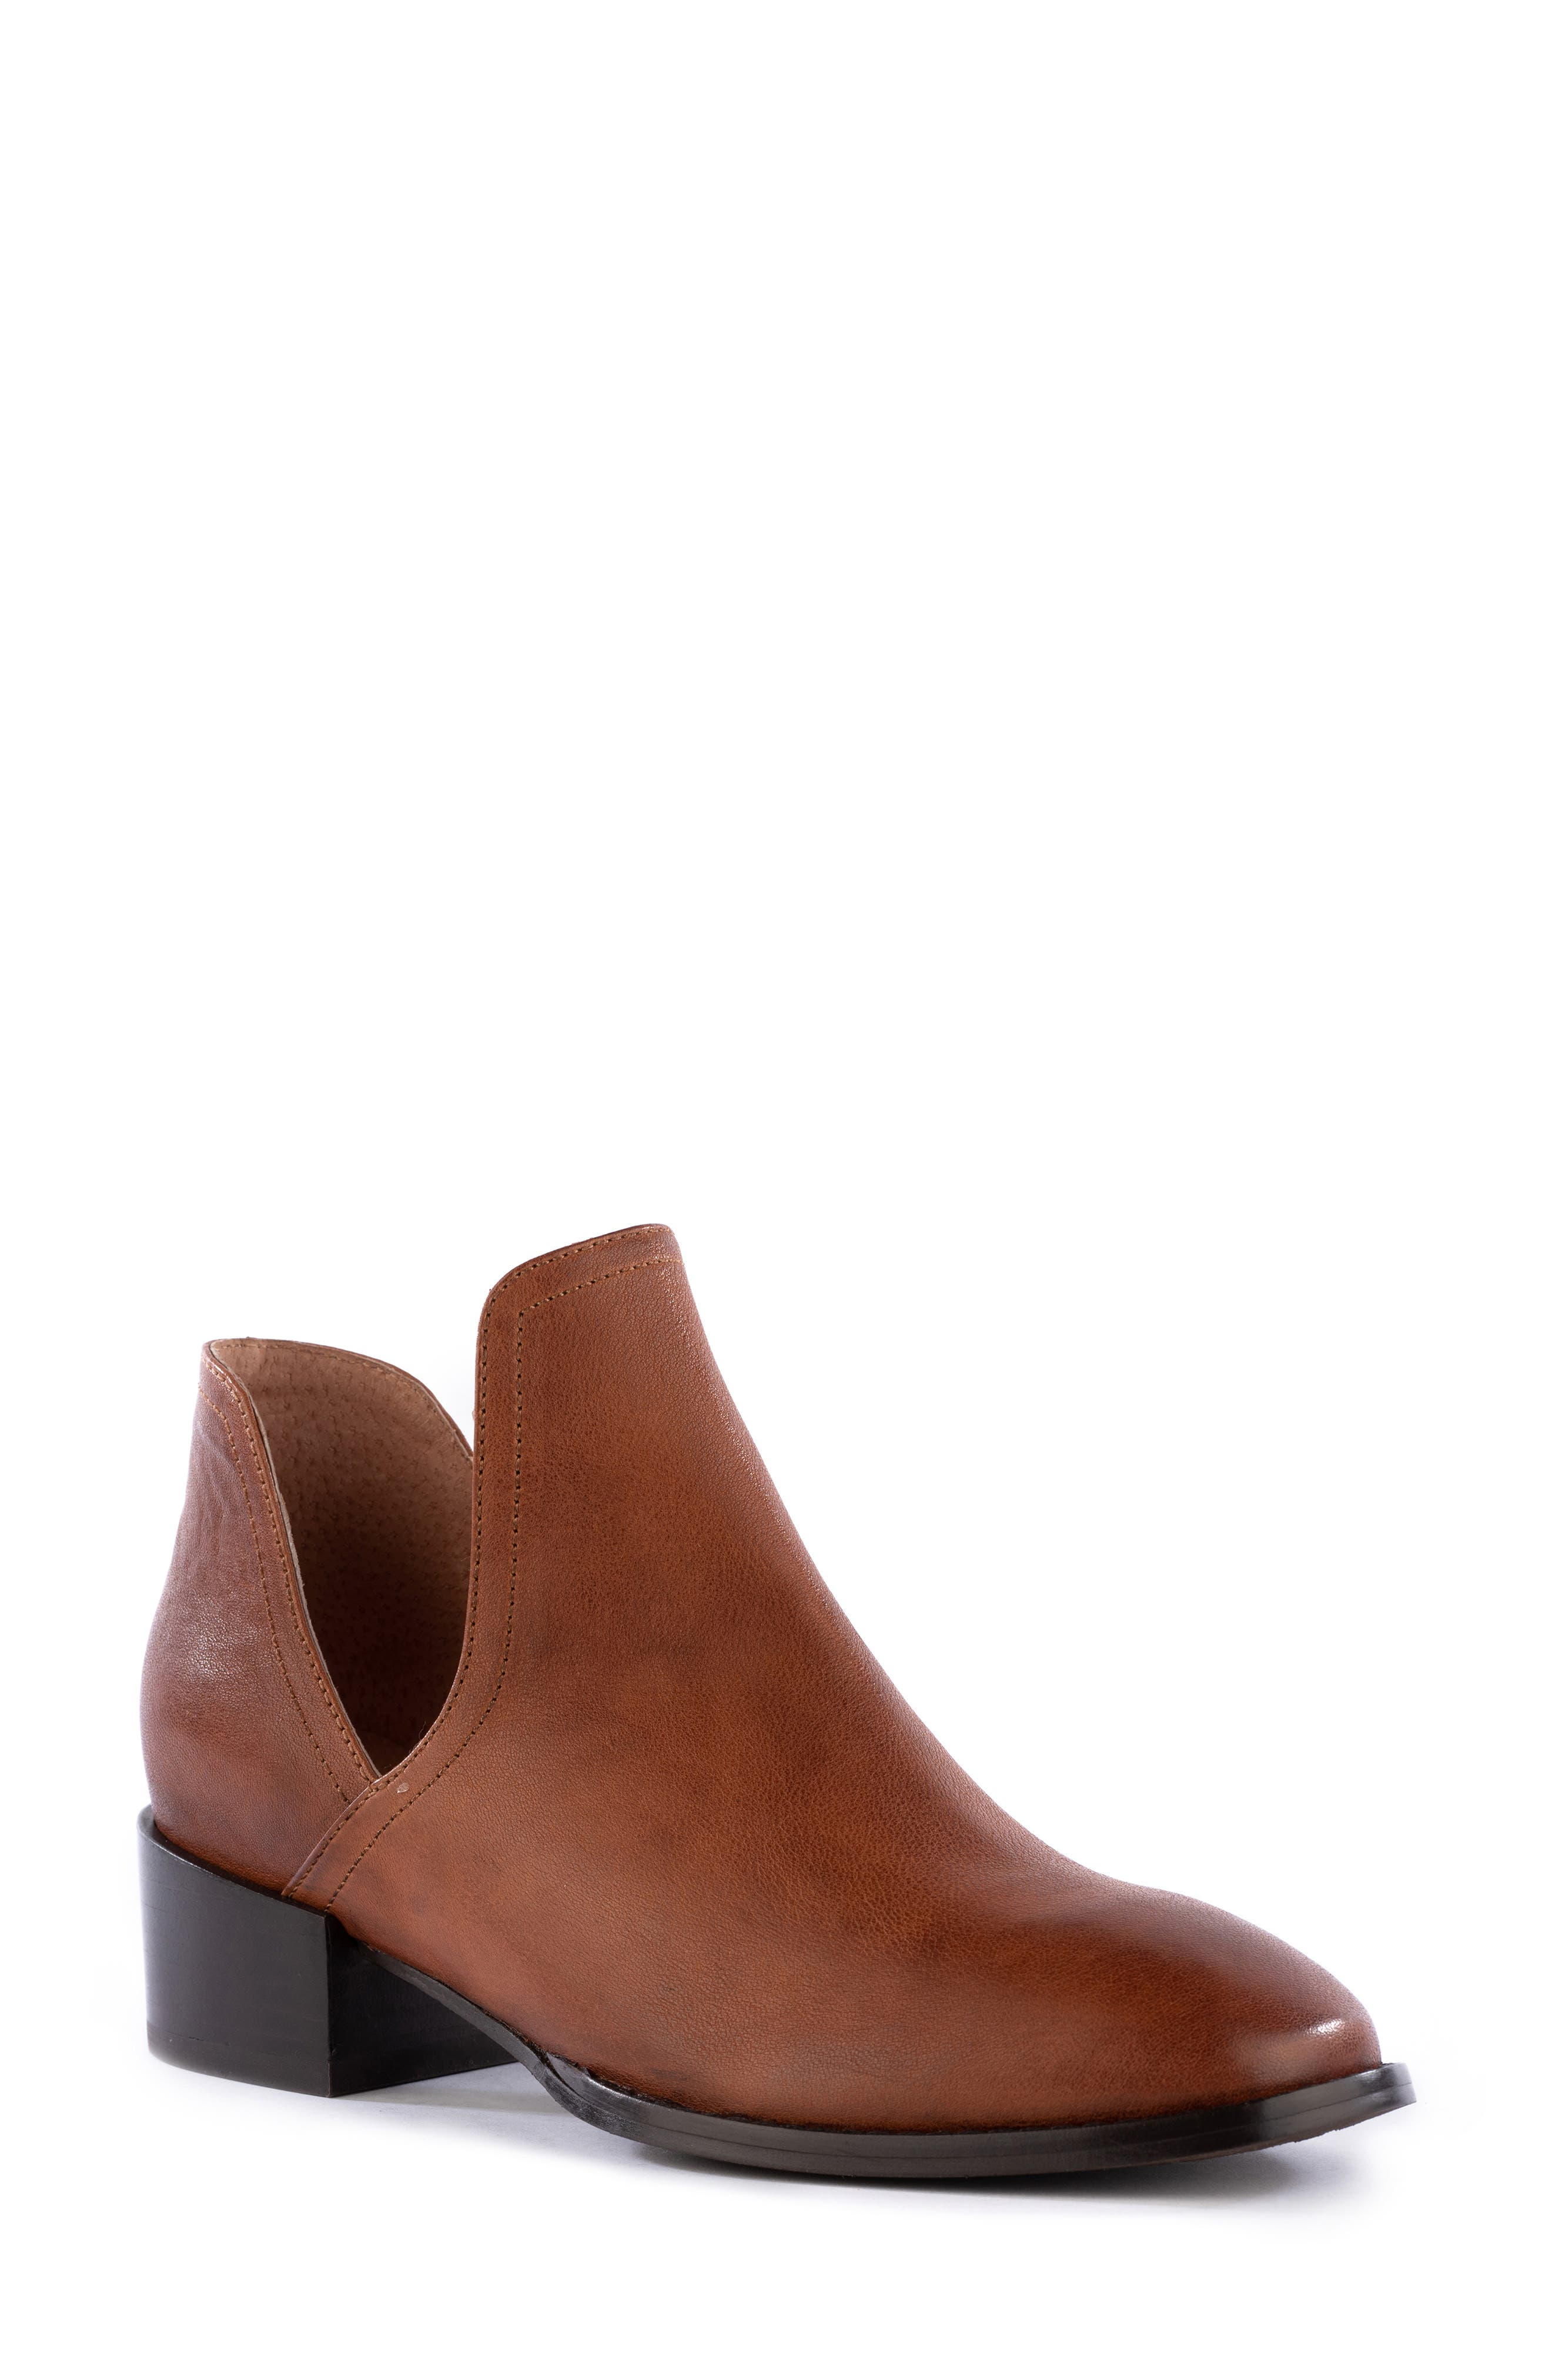 vintage tan suede brown leather ankle buckle boots slip on womens 7 12